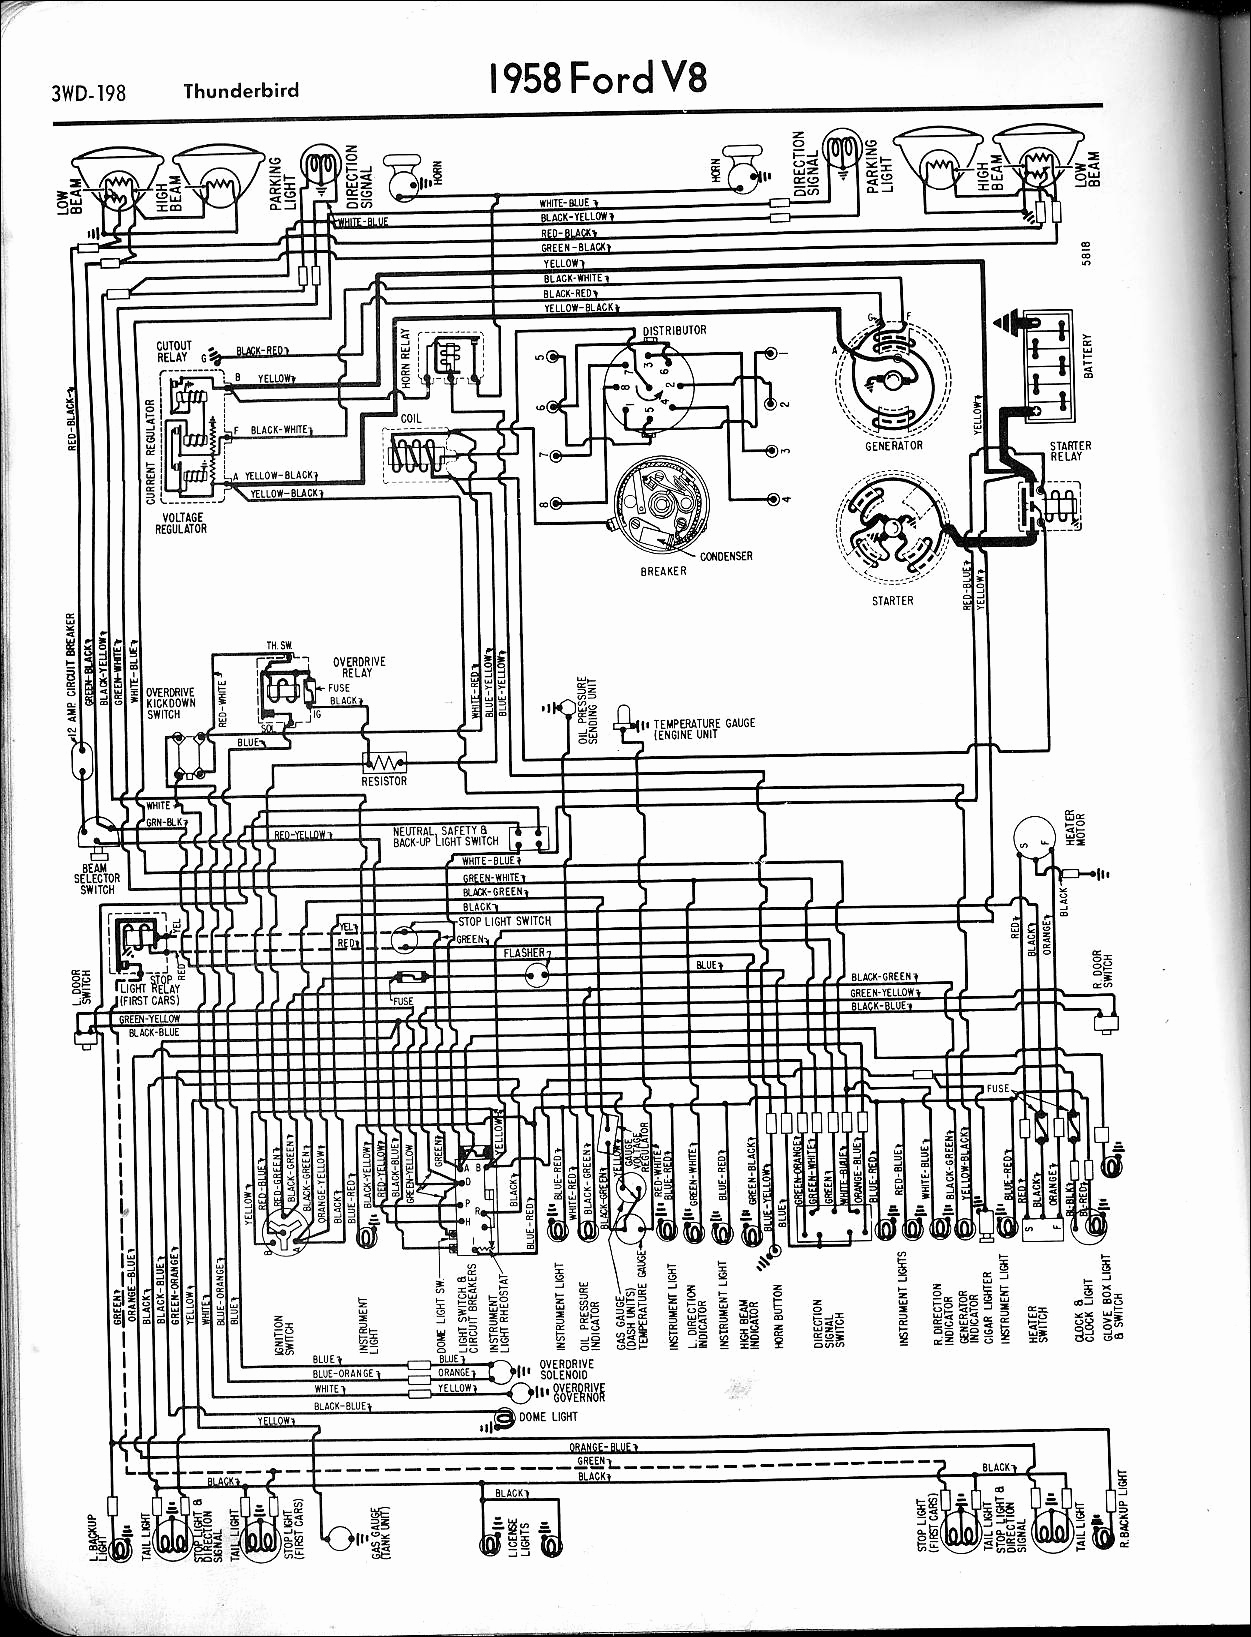 Kohler Voltage Regulator Wiring Diagram | Wiring Diagram - Kohler Voltage Regulator Wiring Diagram